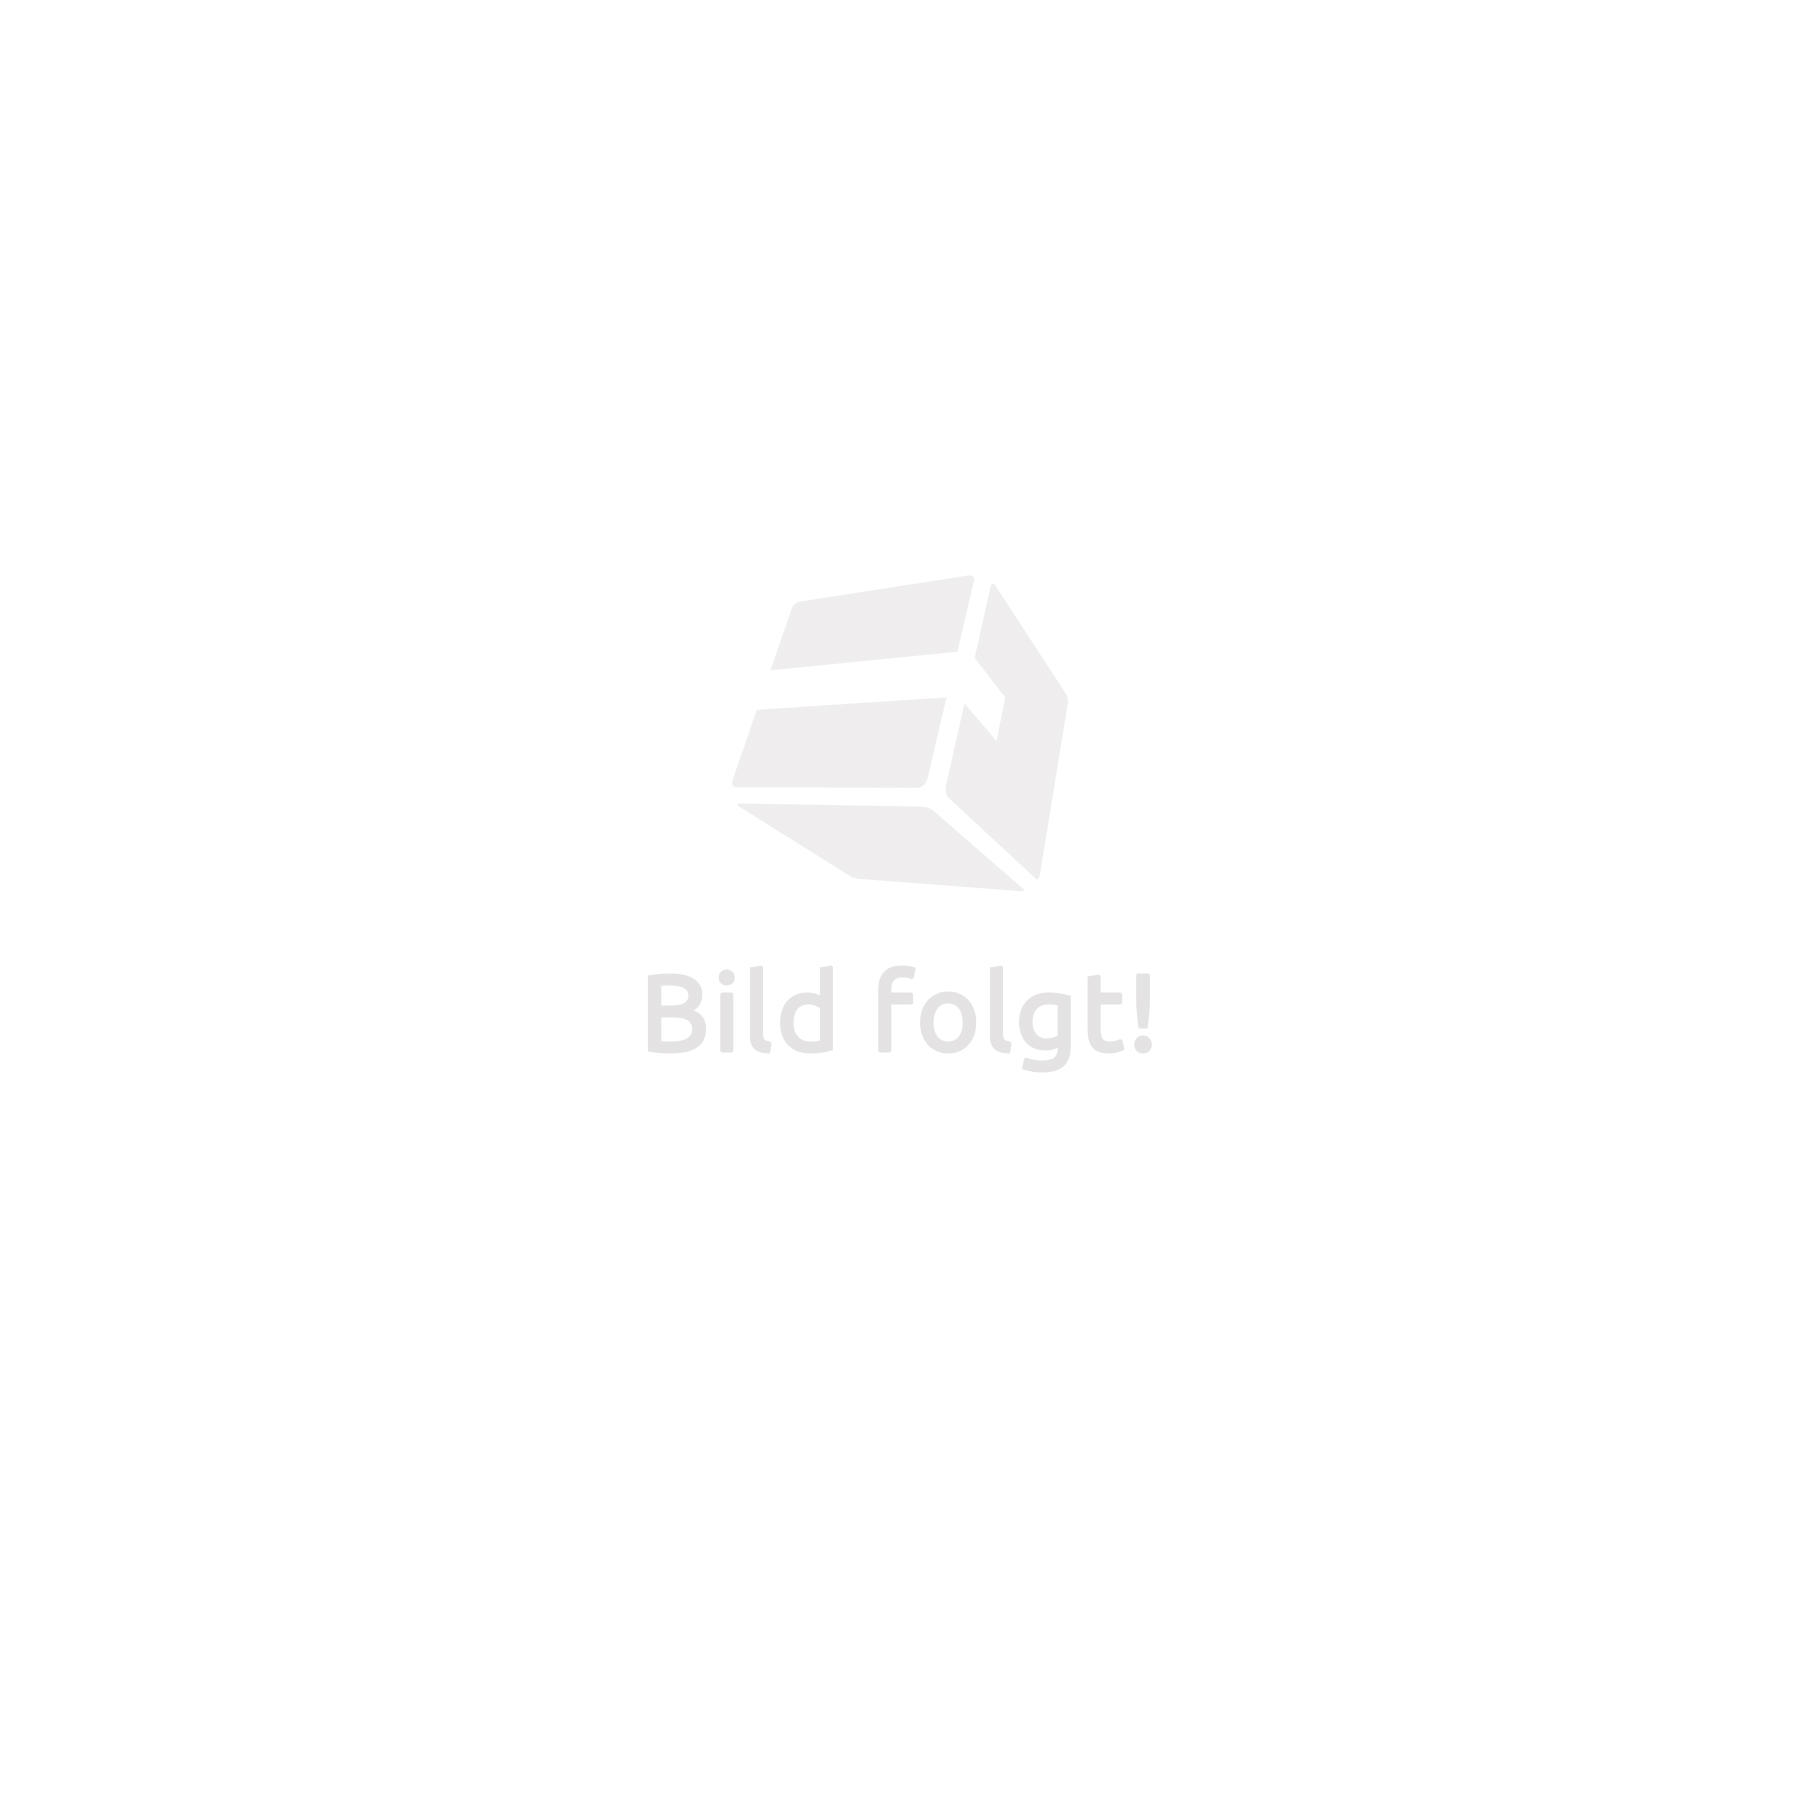 Table de lit pour ordinateur Portable 72 x 35 x 26 cm